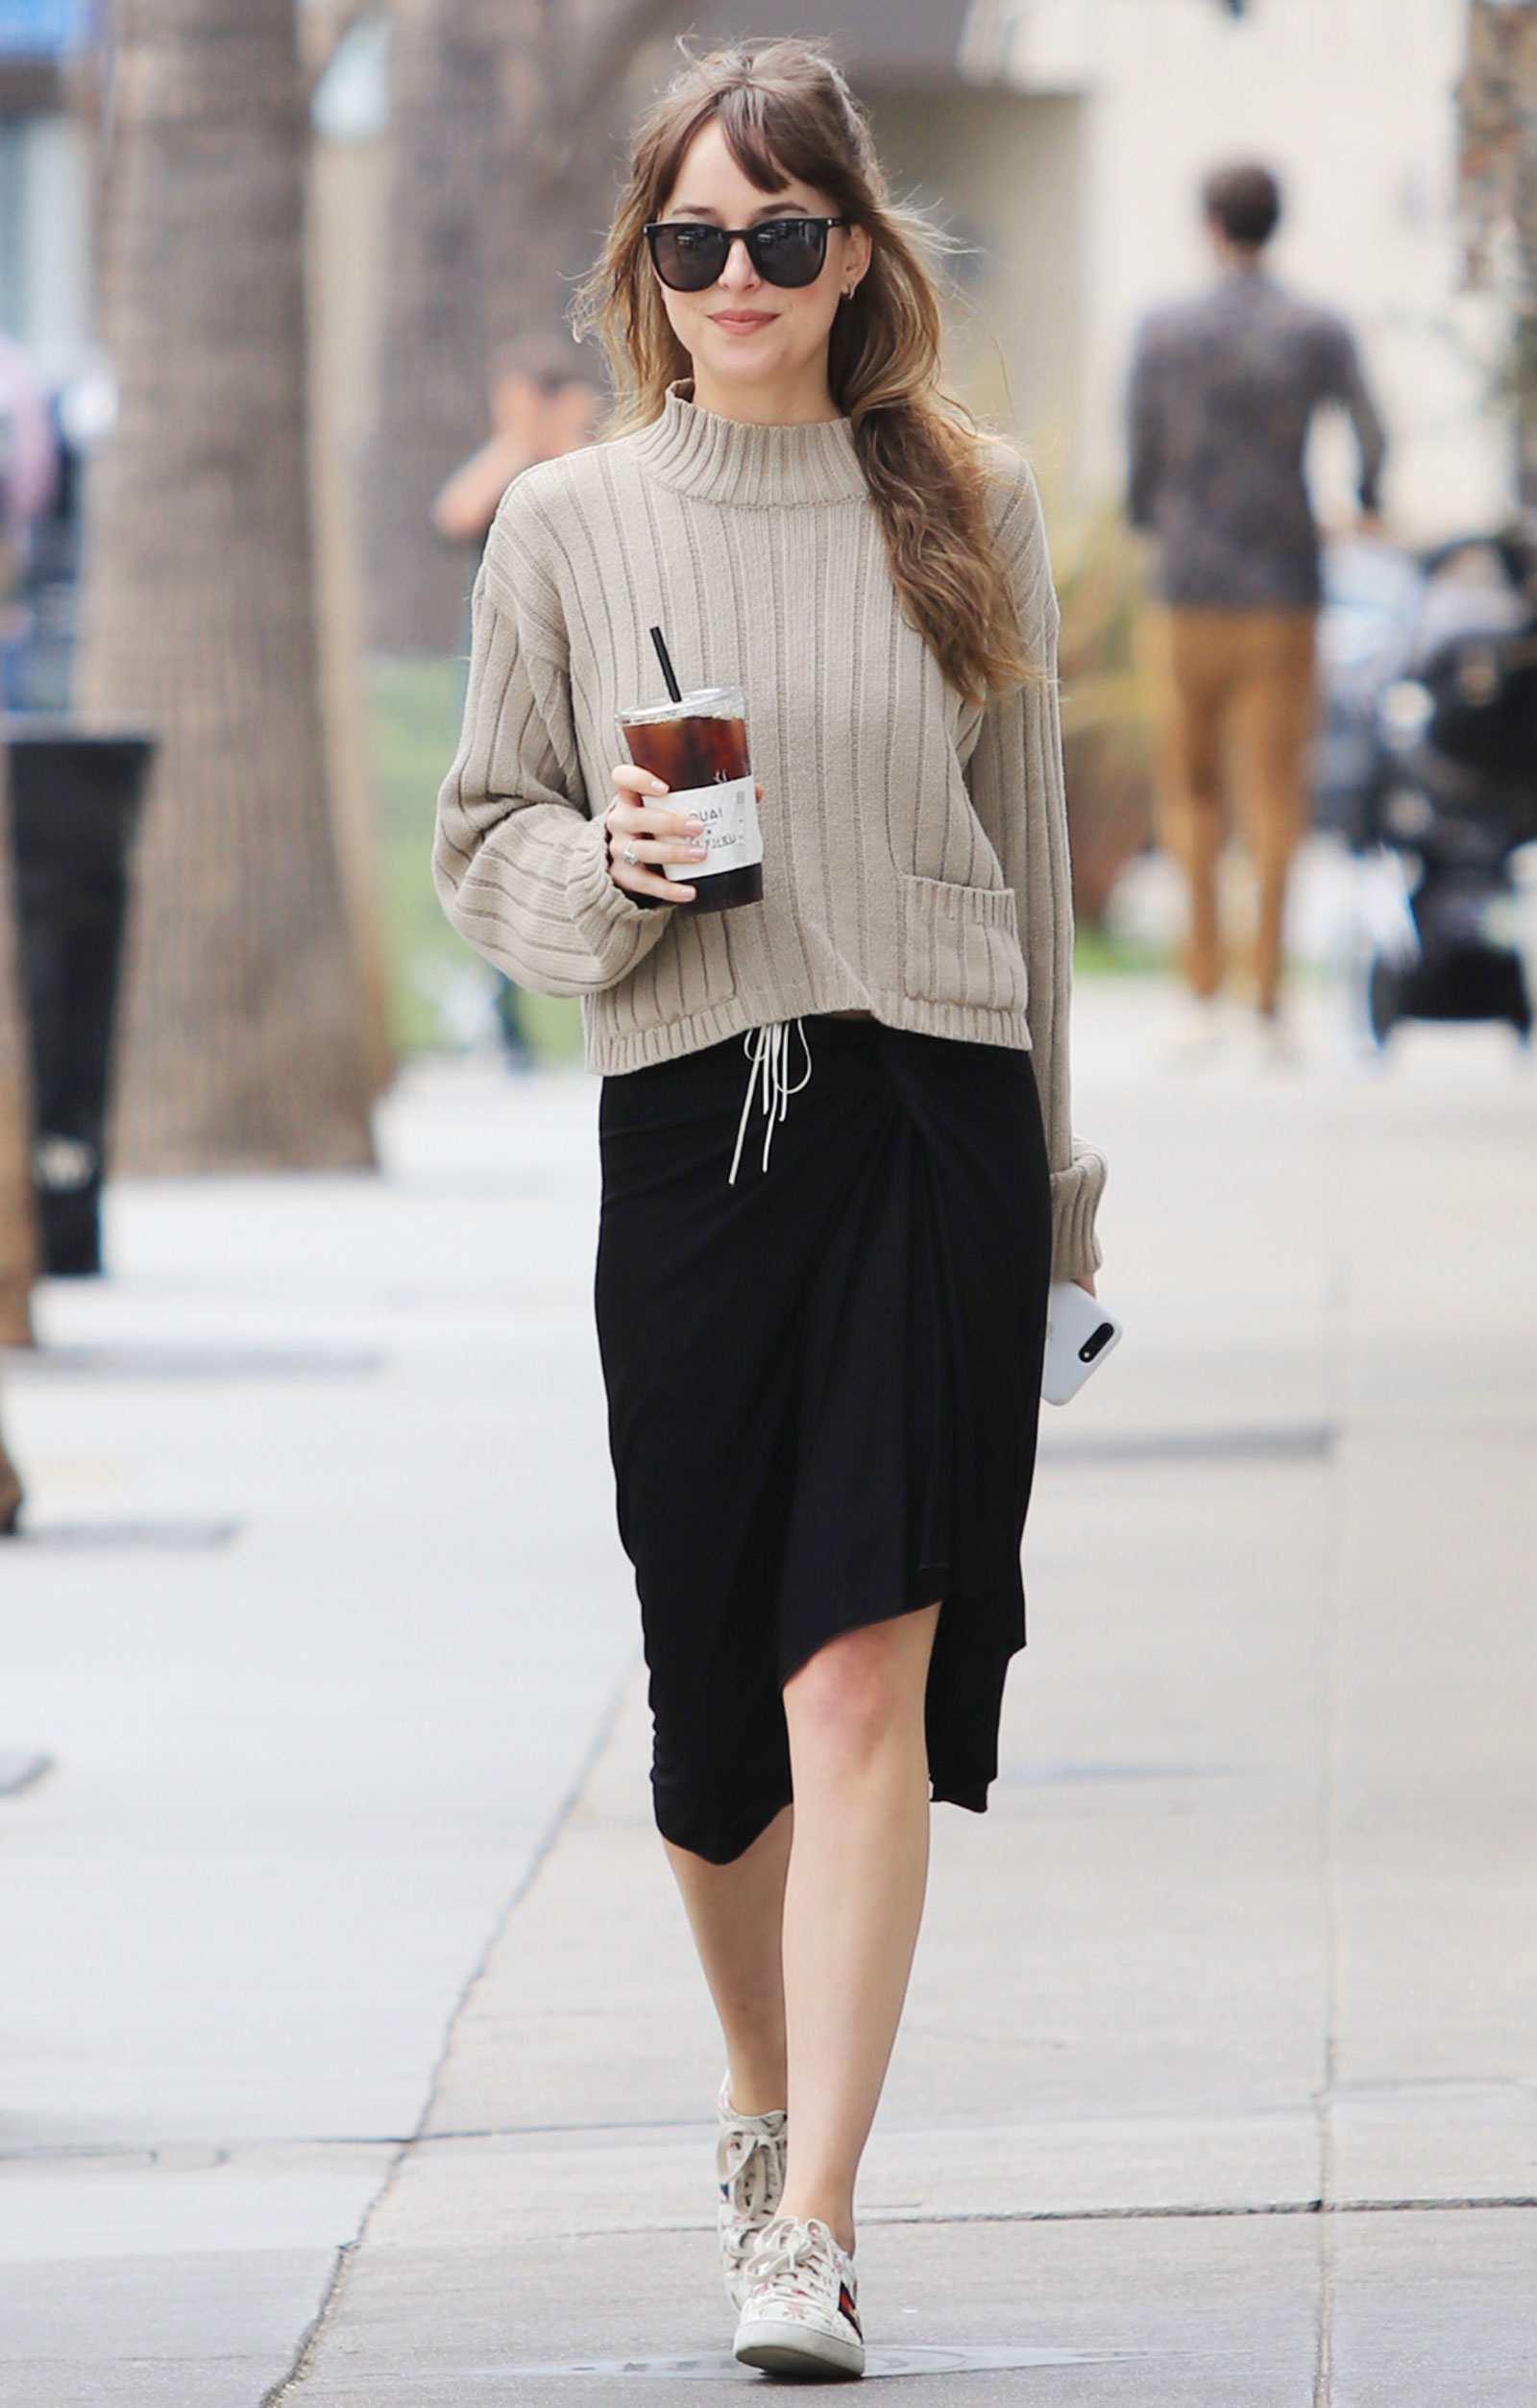 372620282 Dakota Johnson's Mock Neck Sweater and Gucci Floral Sneakers Look ...